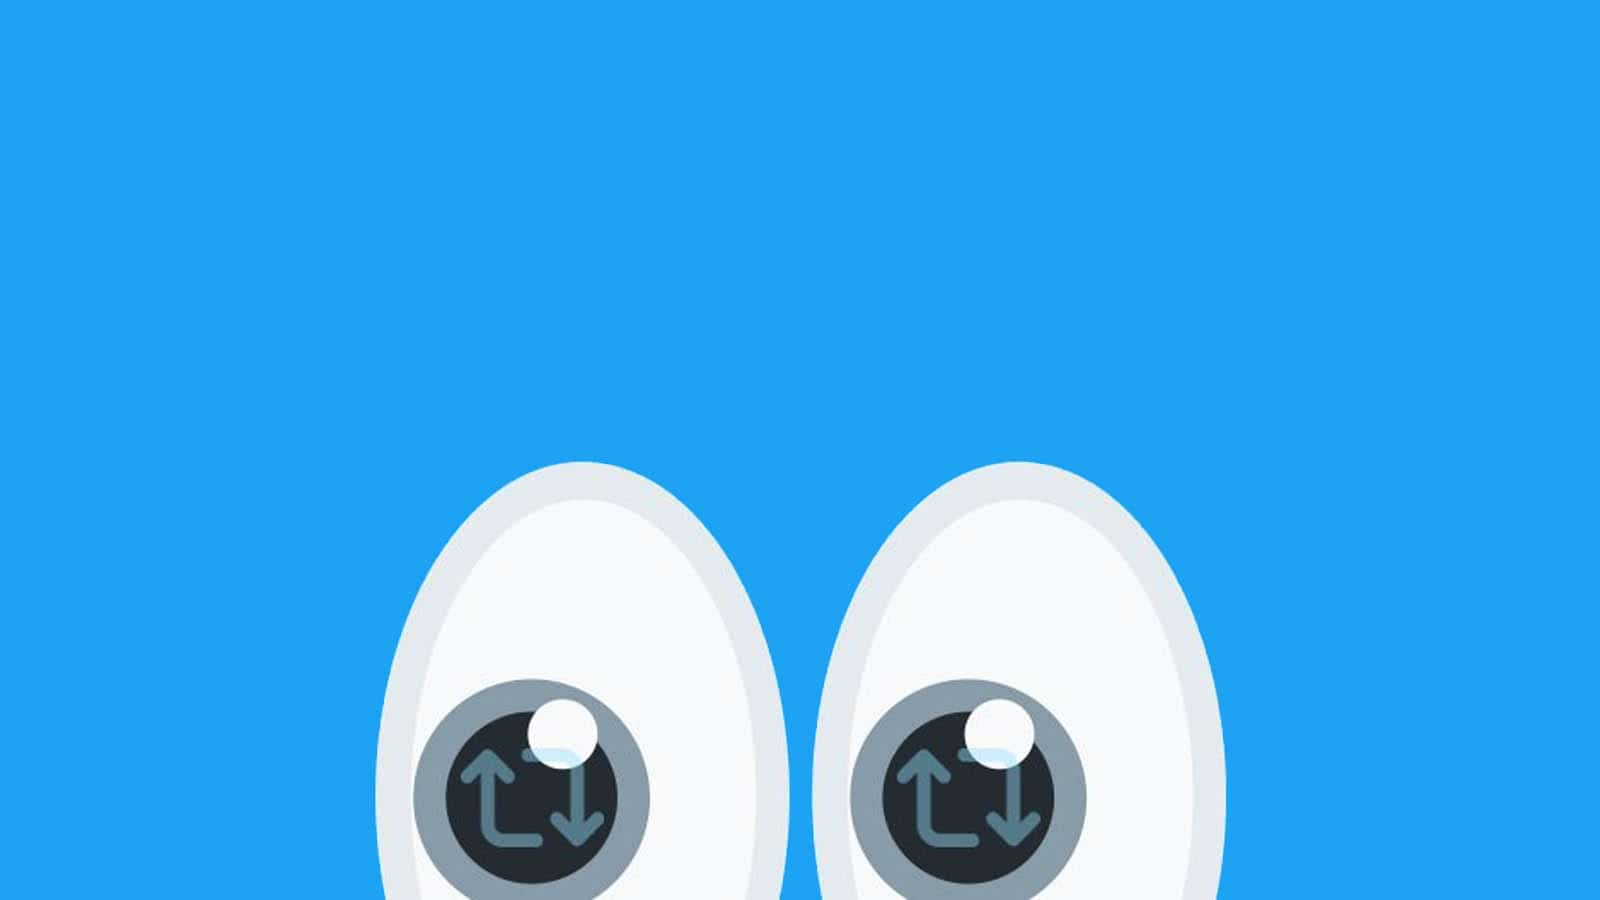 twitter retweets account eyeballs